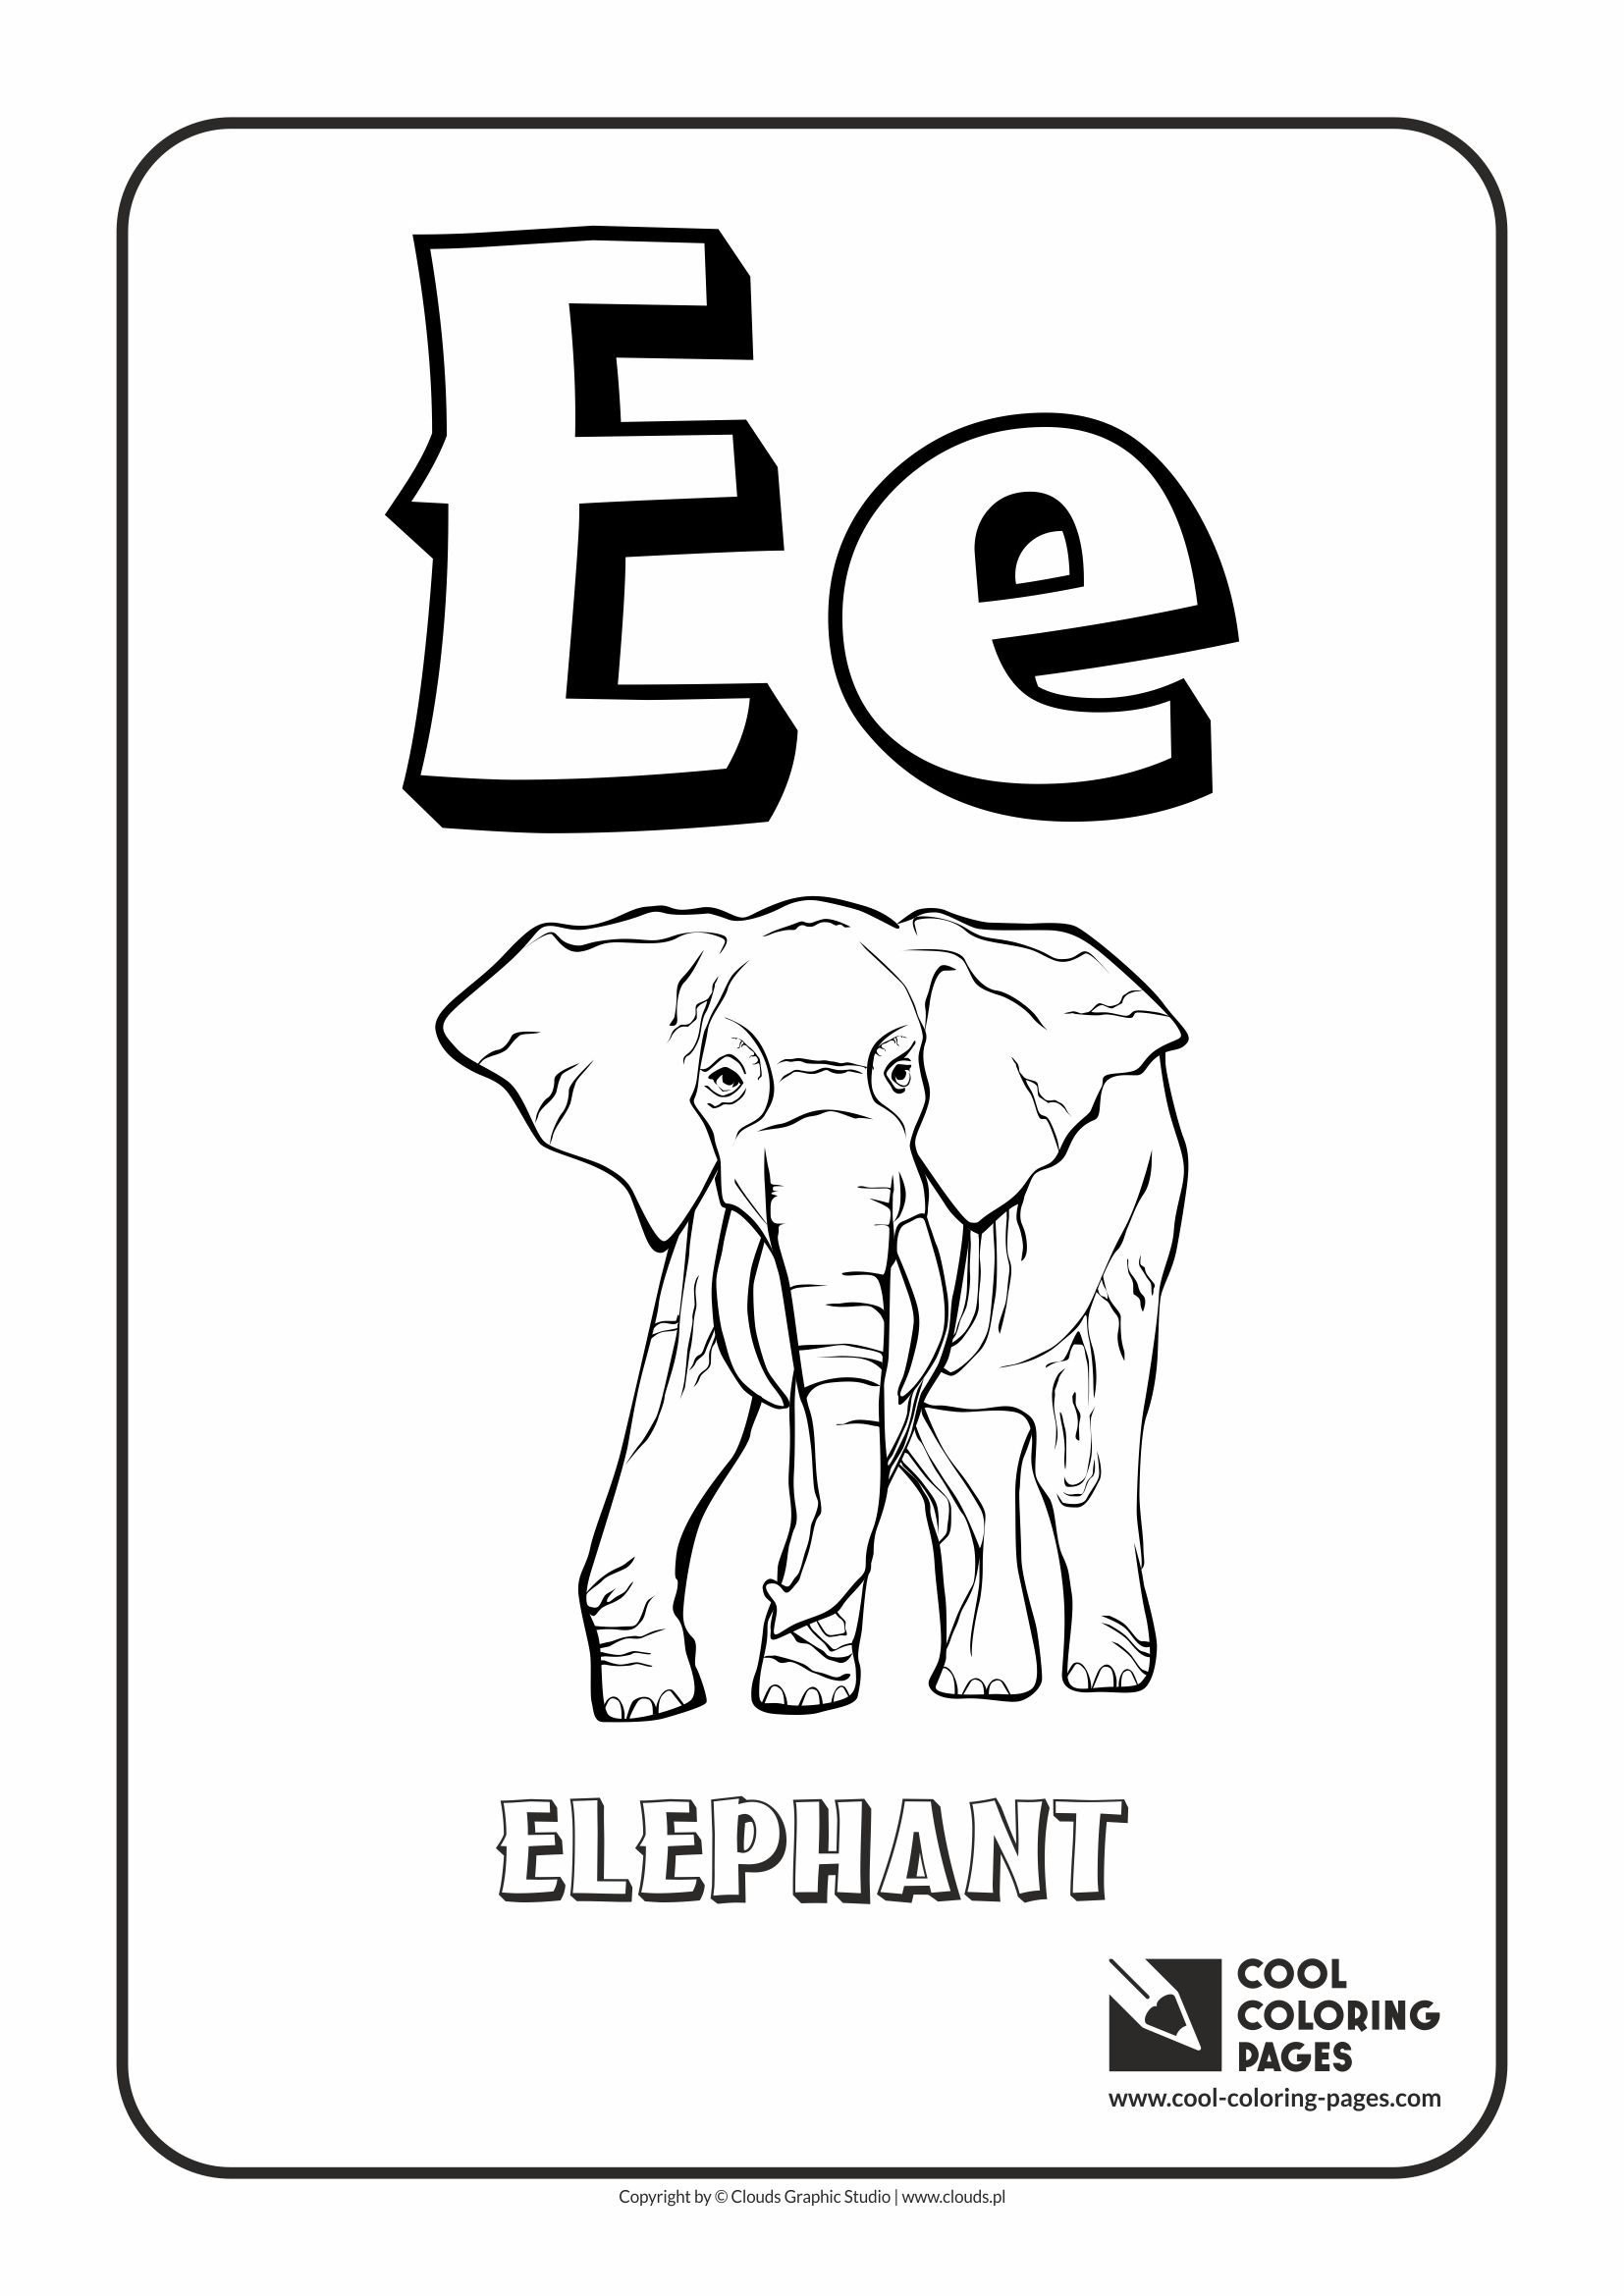 Cool Coloring Pages Letter E